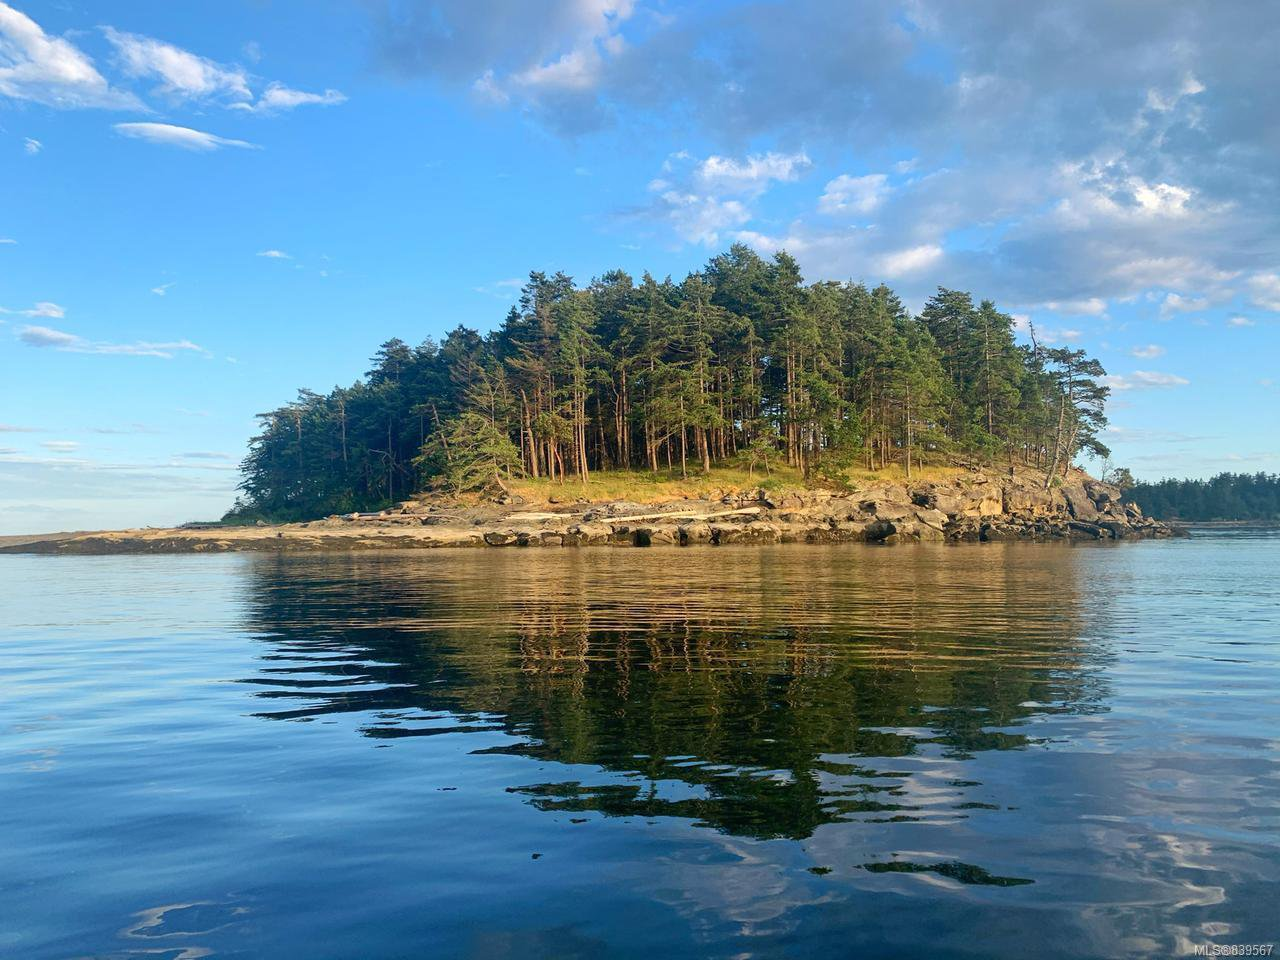 Main Photo:  in SATURNINA ISLAND: Isl Small Islands (Nanaimo Area) Land for sale (Islands)  : MLS®# 839567